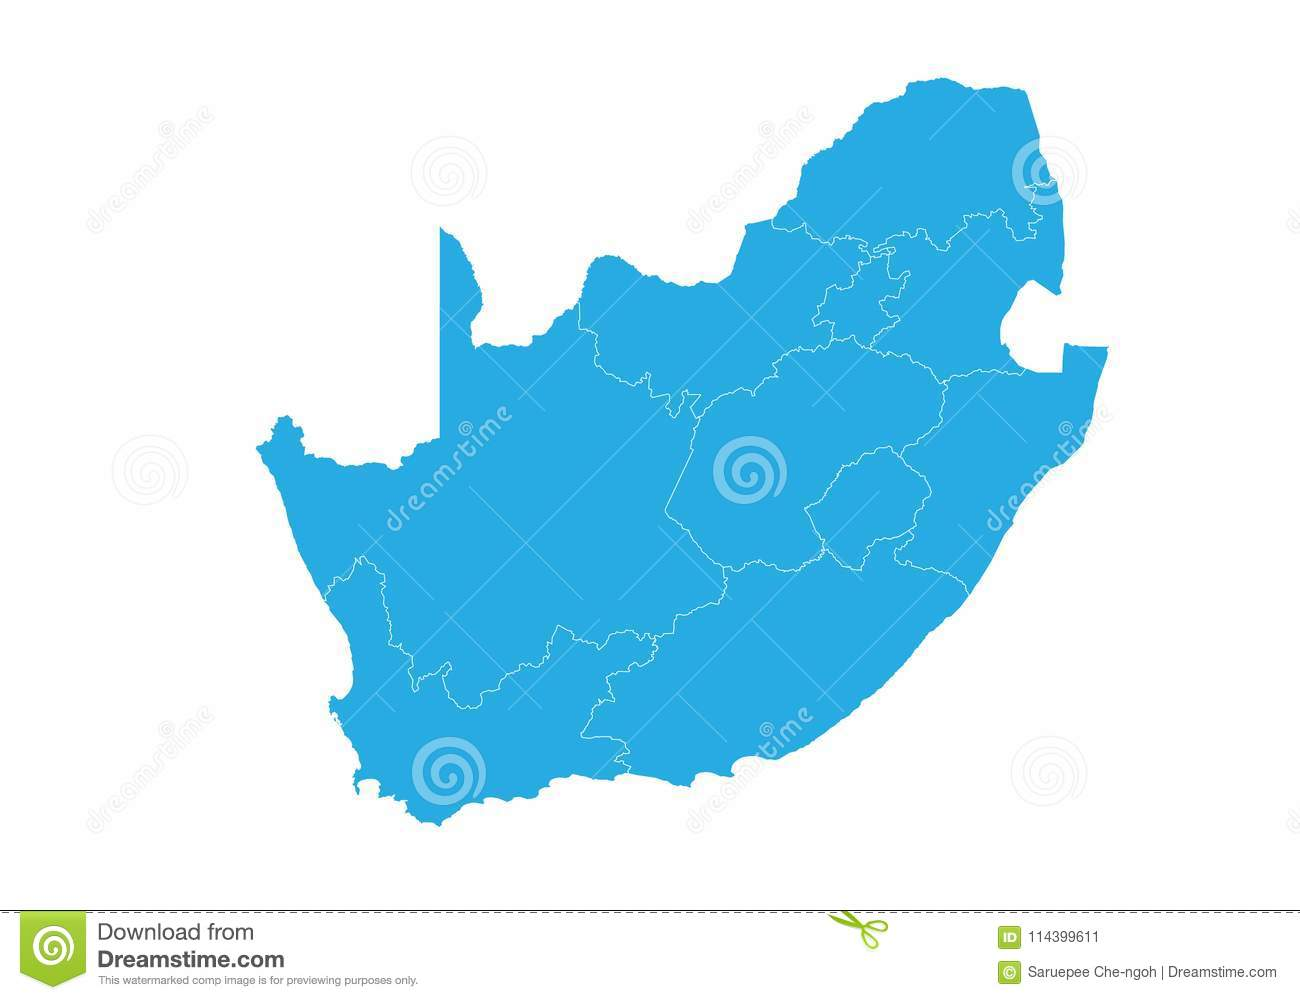 Shape Of Africa Map.Map Of South Africa High Detailed Vector Map South Africa Stock